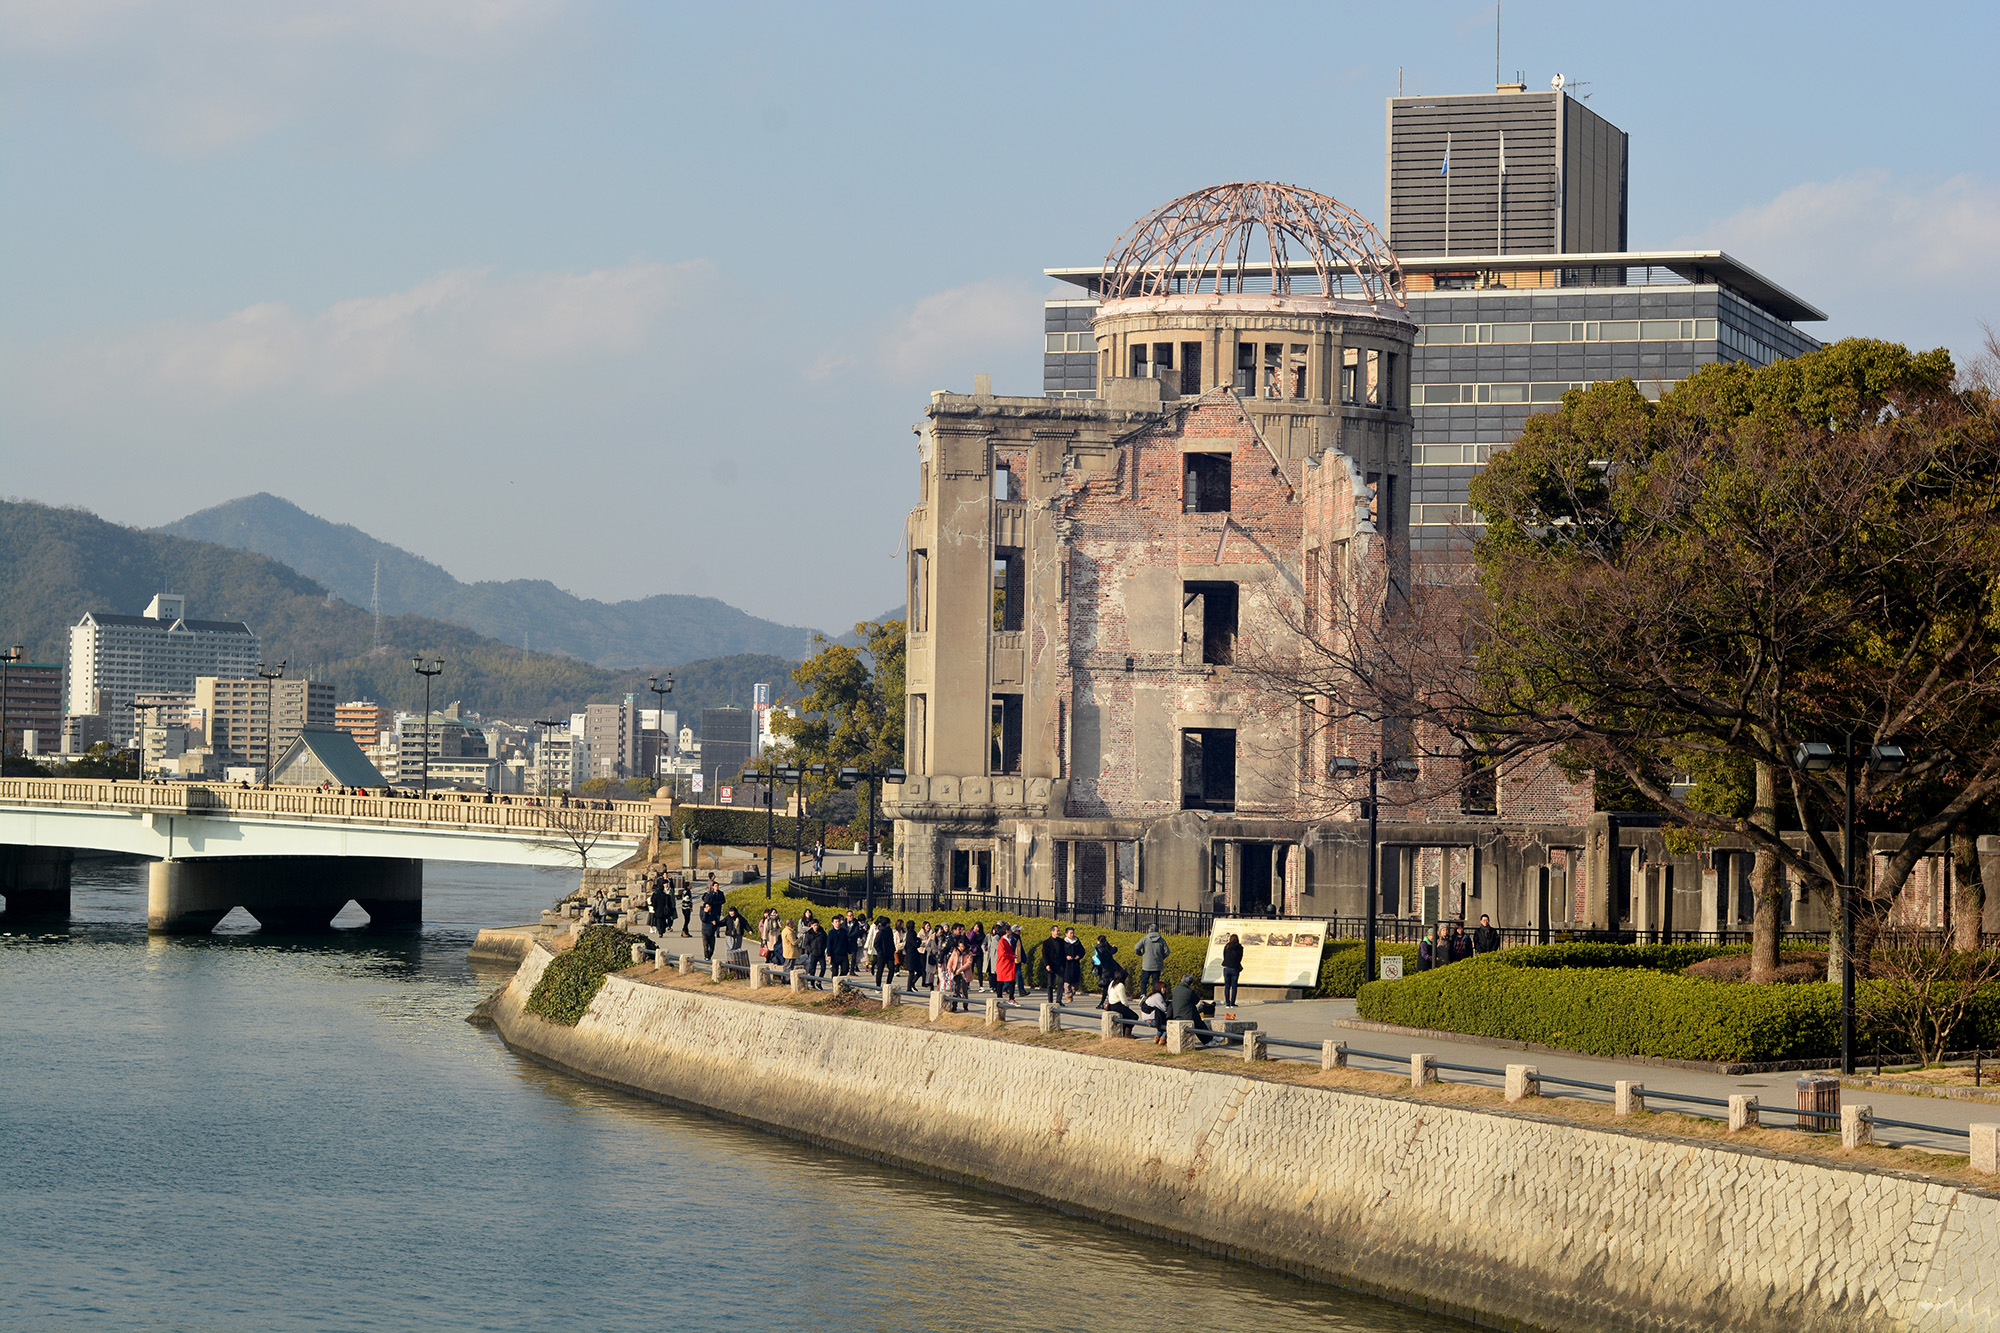 The Hiroshima Peace Memorial Dome